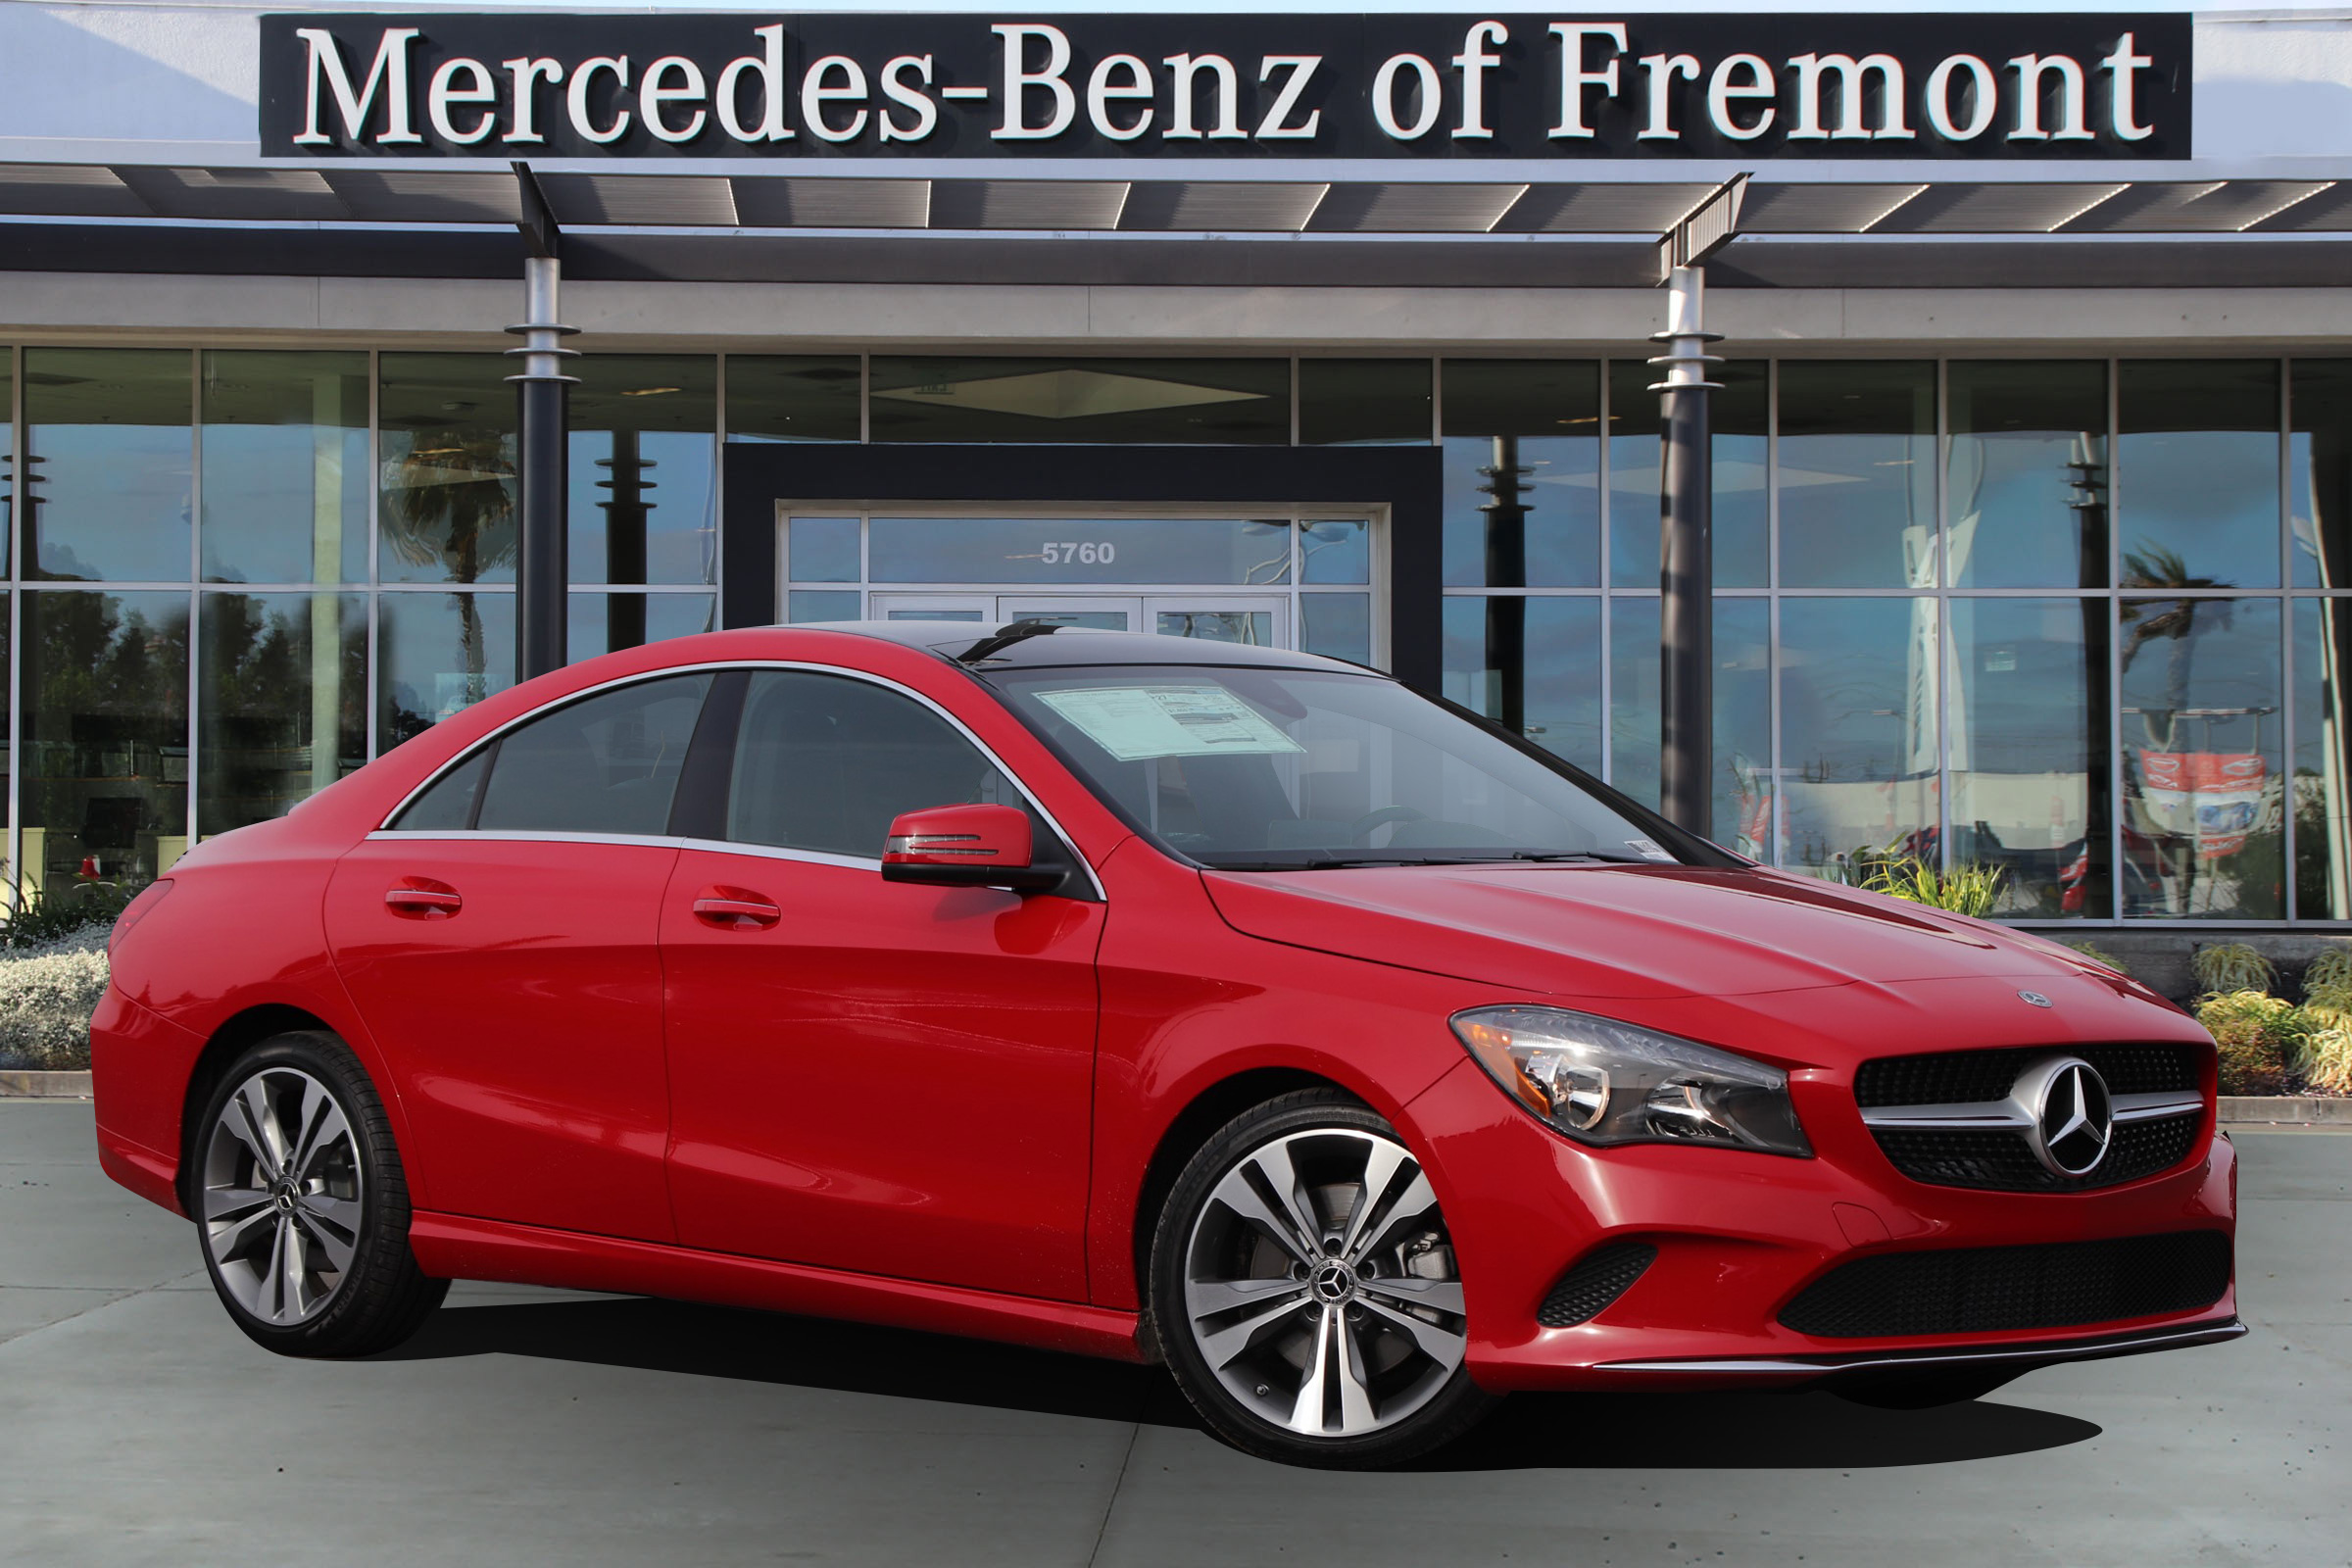 New 2019 Mercedes Benz Cla 250 4matic Coupe In Fremont